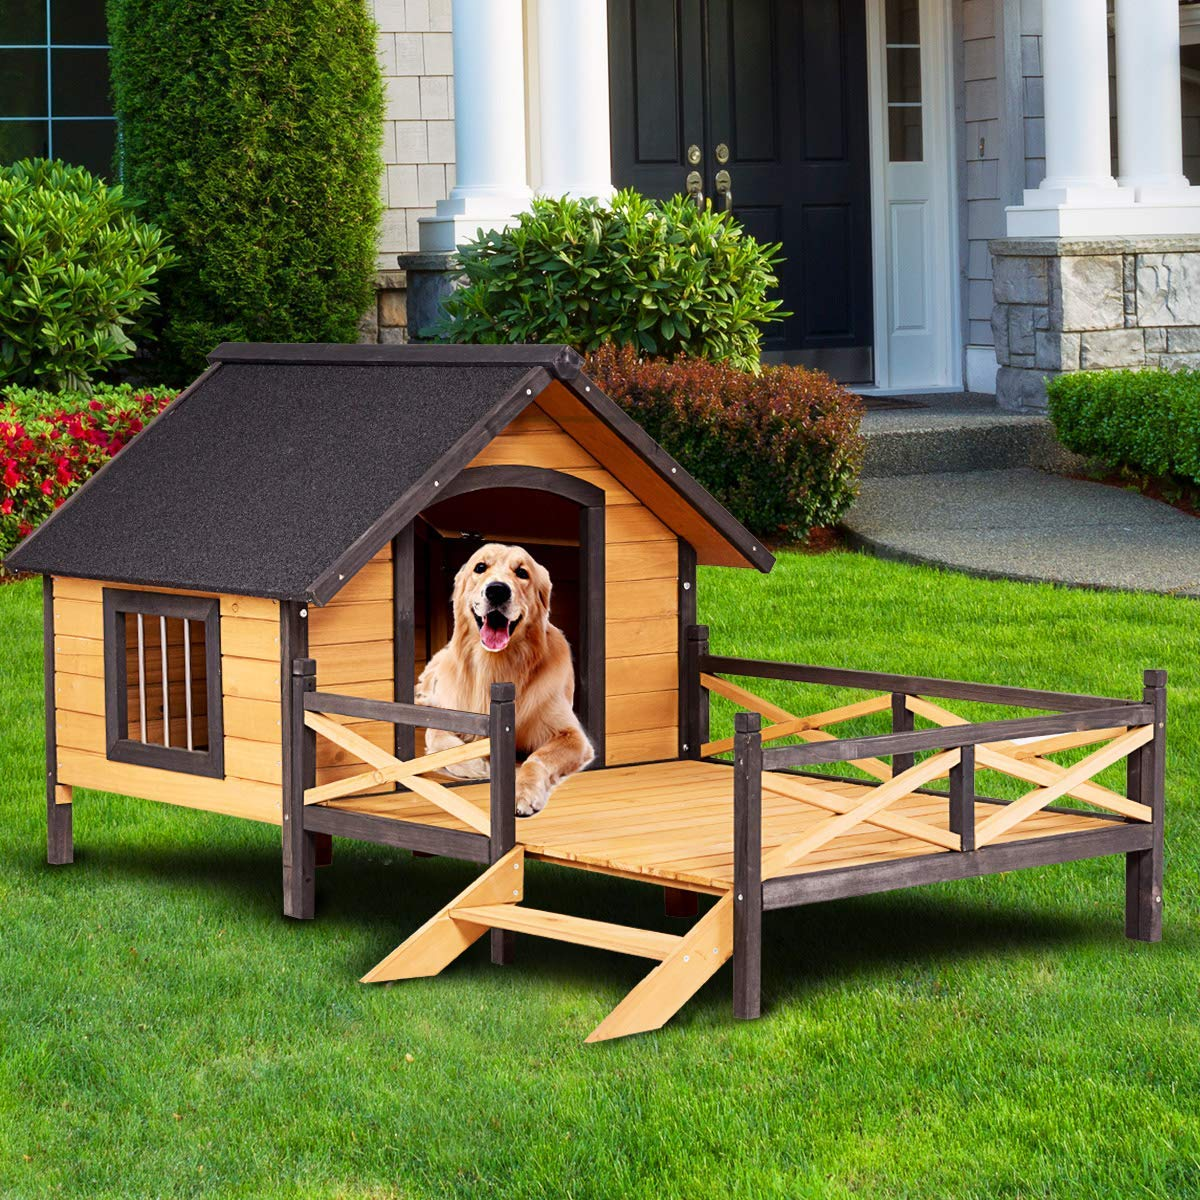 Tangkula Wooden Dog House Cabin Style Elevated Weather Waterproof Outdoor Large Pet Dog House Lodge with Porch, Spacious Deck for Sunny Nap